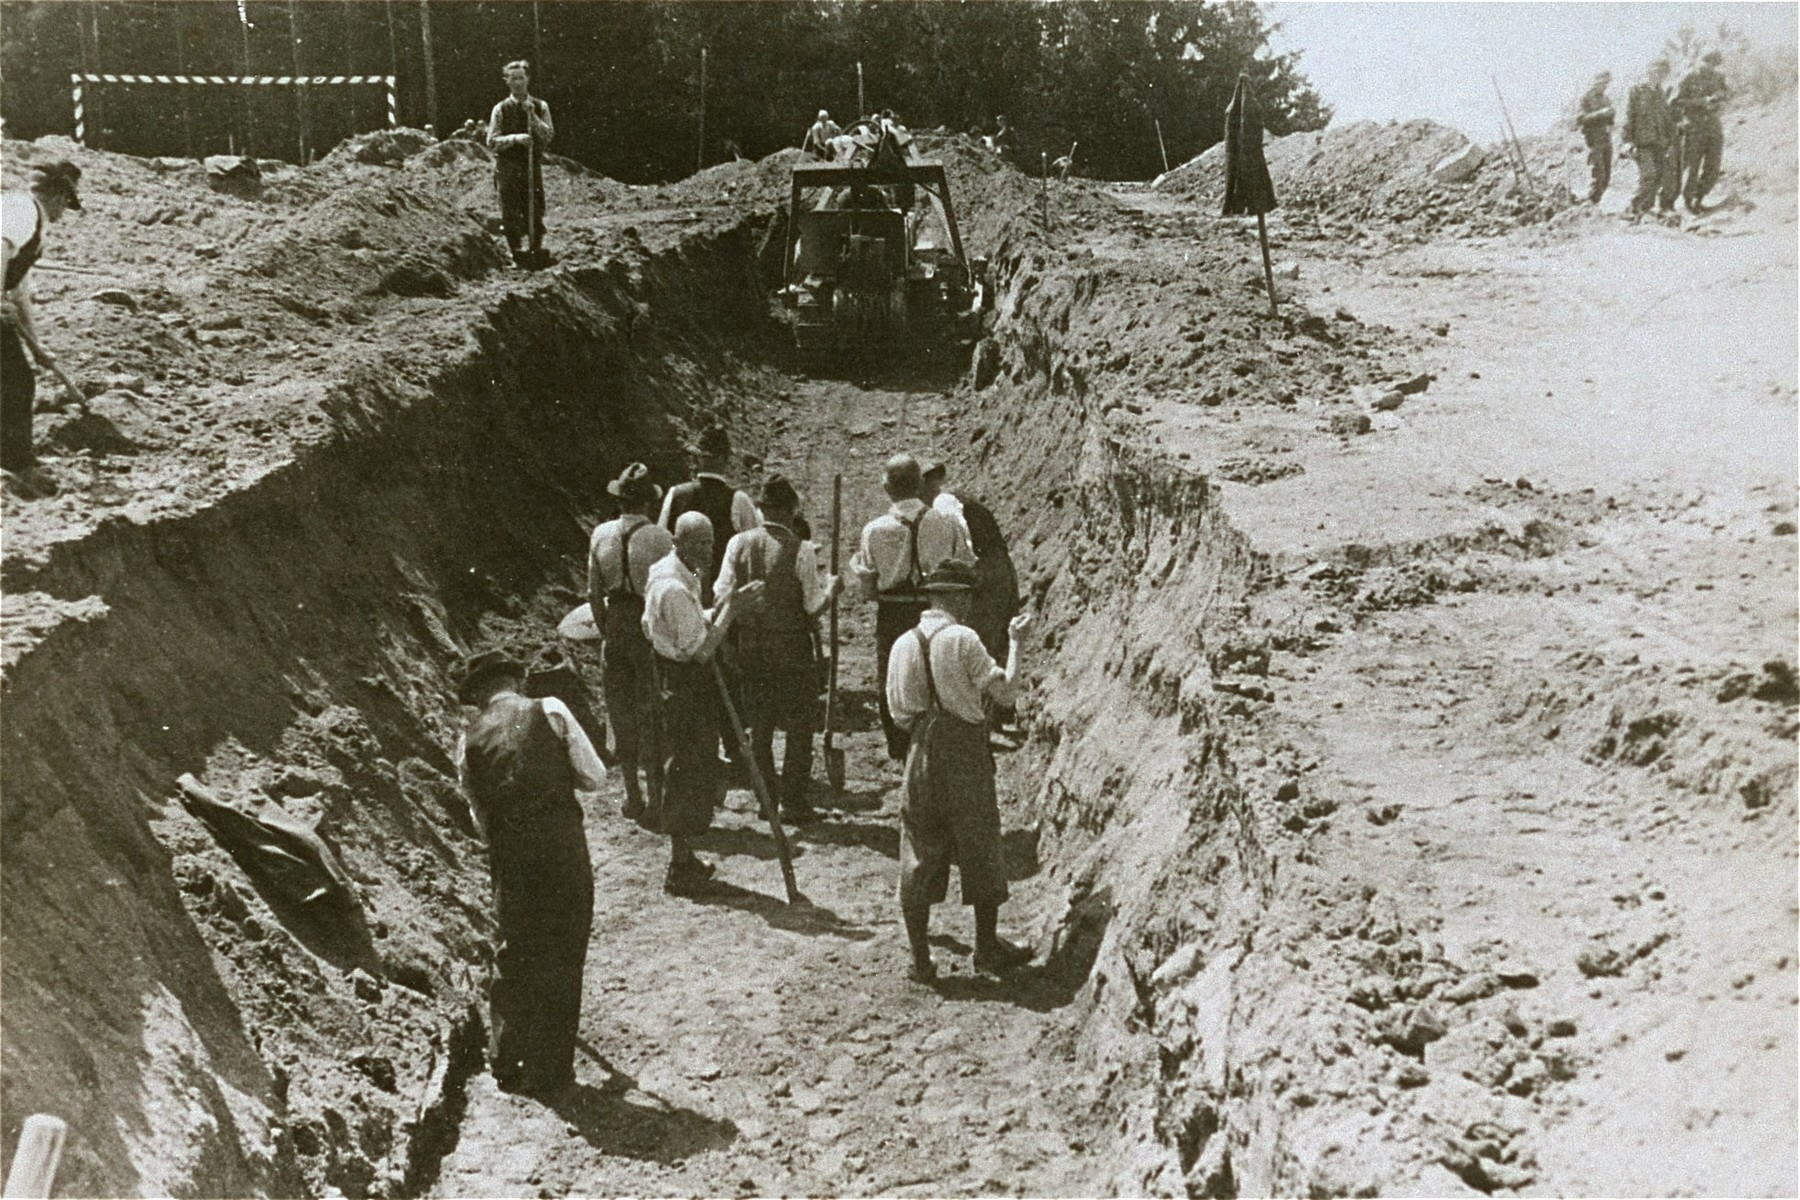 Austrian civilians prepare a mass grave to bury former inmates at the Mauthausen concentration camp.